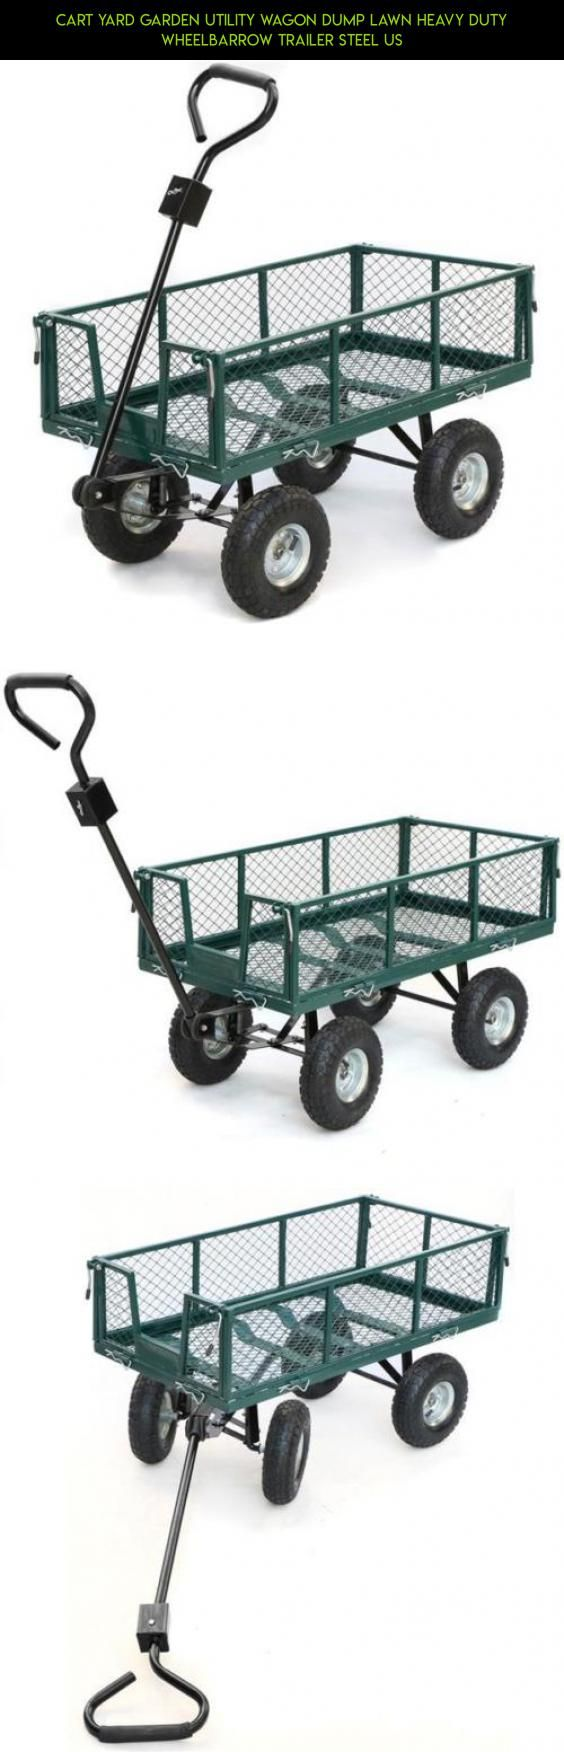 Cart Yard Garden Utility Wagon Dump Lawn Heavy Duty Wheelbarrow Trailer Steel US #racing #camera #tech #technology #drone #cart #gardening #parts #products #gadgets #shopping #fpv #utility #kit #plans